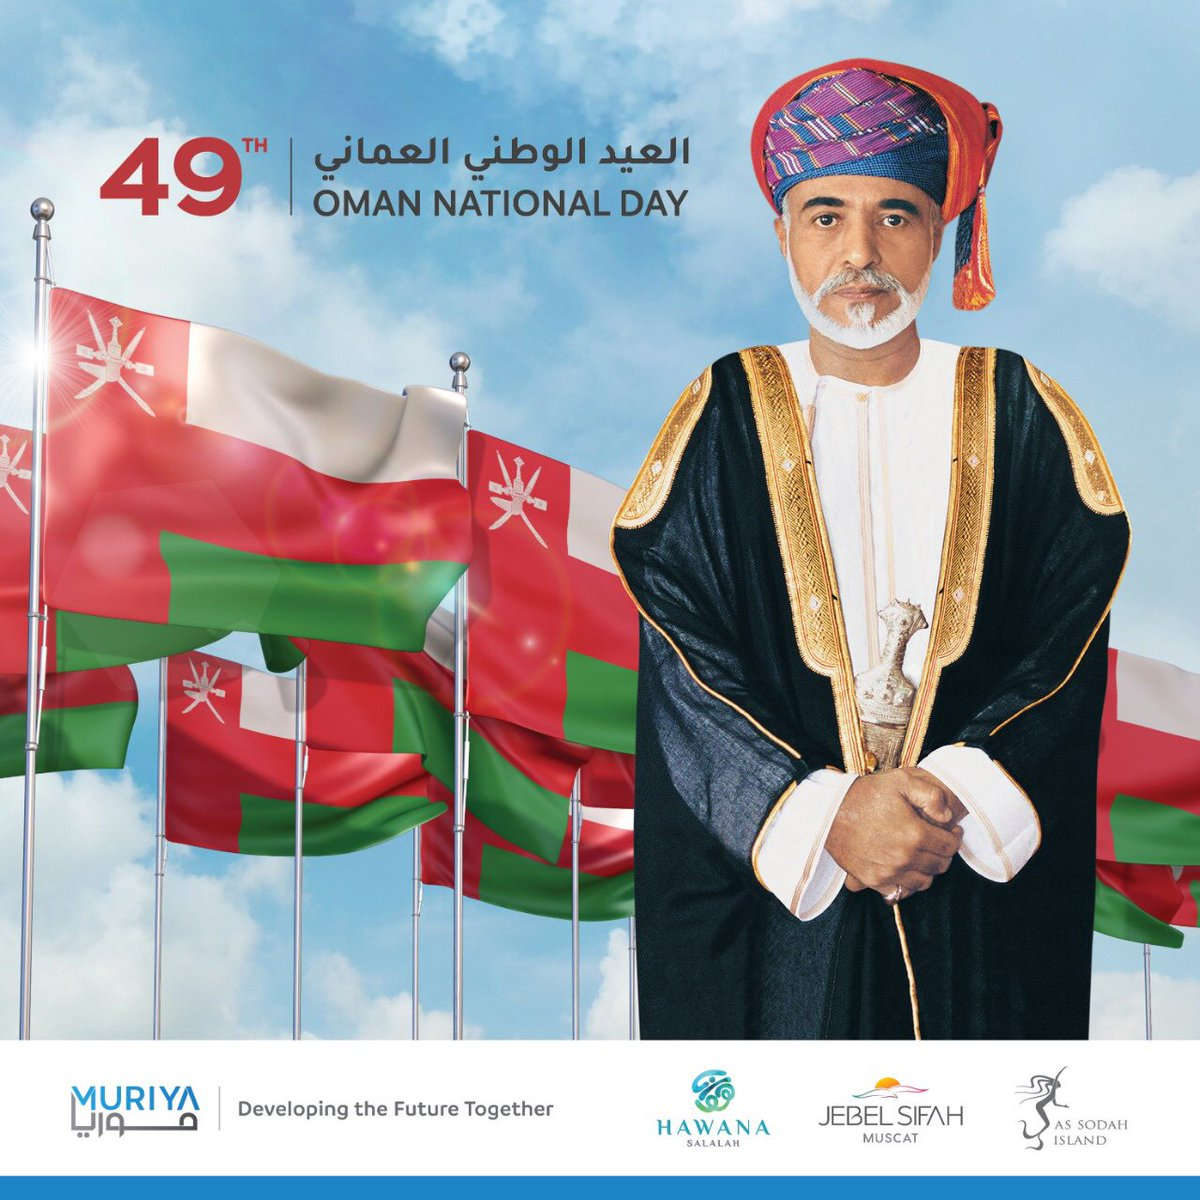 Muryia is wishing the great Omani people a happy 49th National day under the visionary leadership of His Majesty Sultan Qaboos bin Said.  May this year too be full of prosperity and fortune. https://t.co/97MIKVzCWO